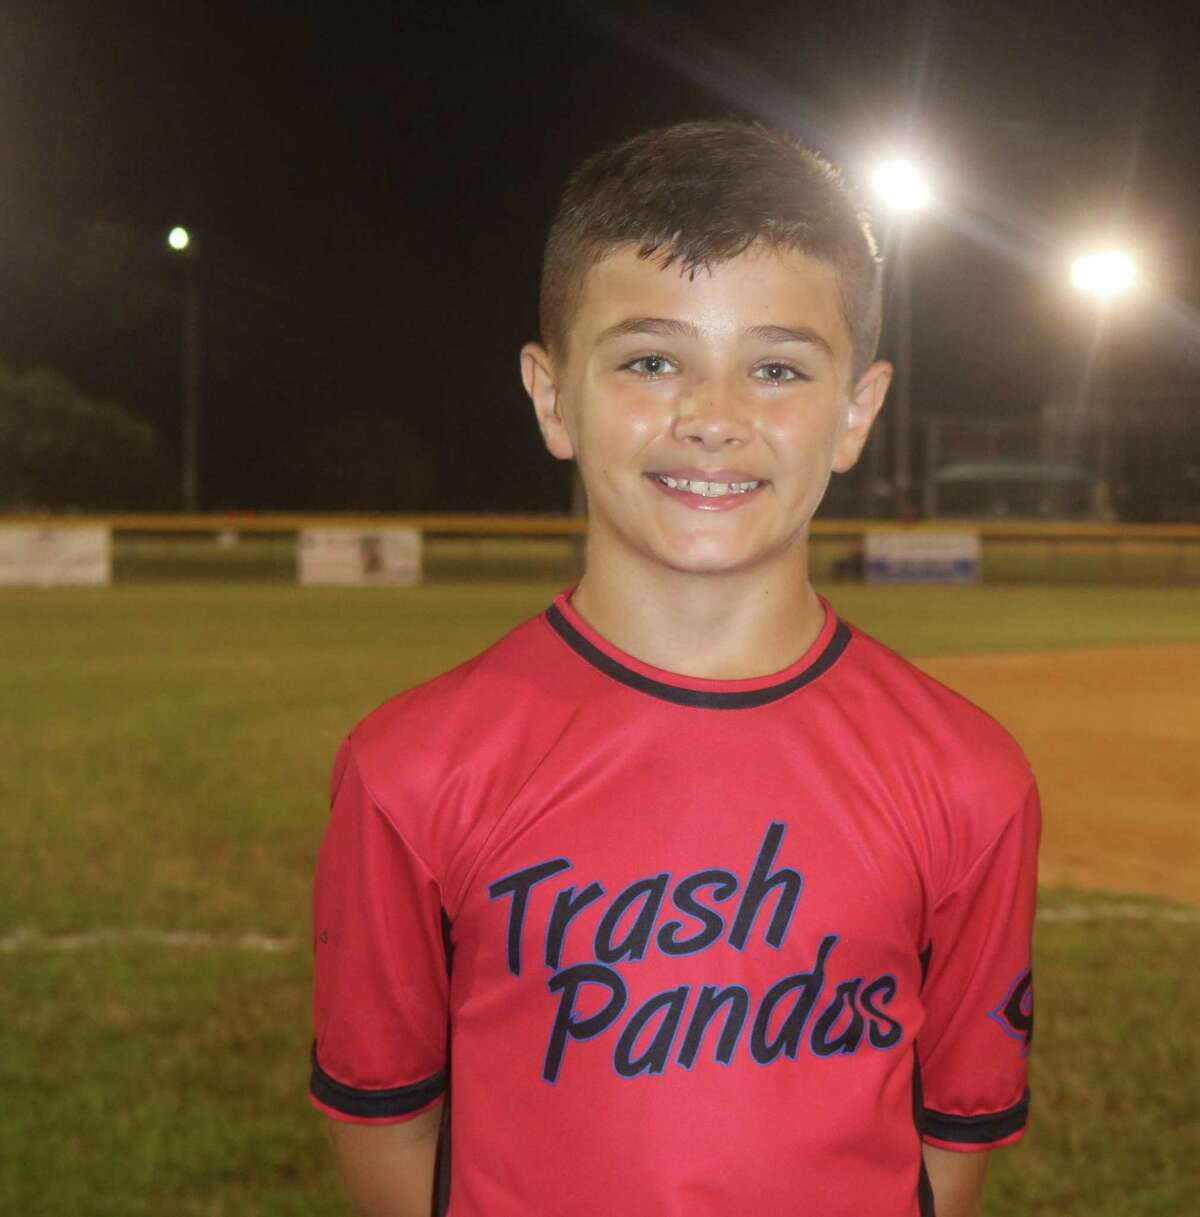 Caiden Digilio accounted for four runs on offense and turned a nifty inning-ending 6-3 double play to help his teammates open the Triple A city championship with a 13-3 win.